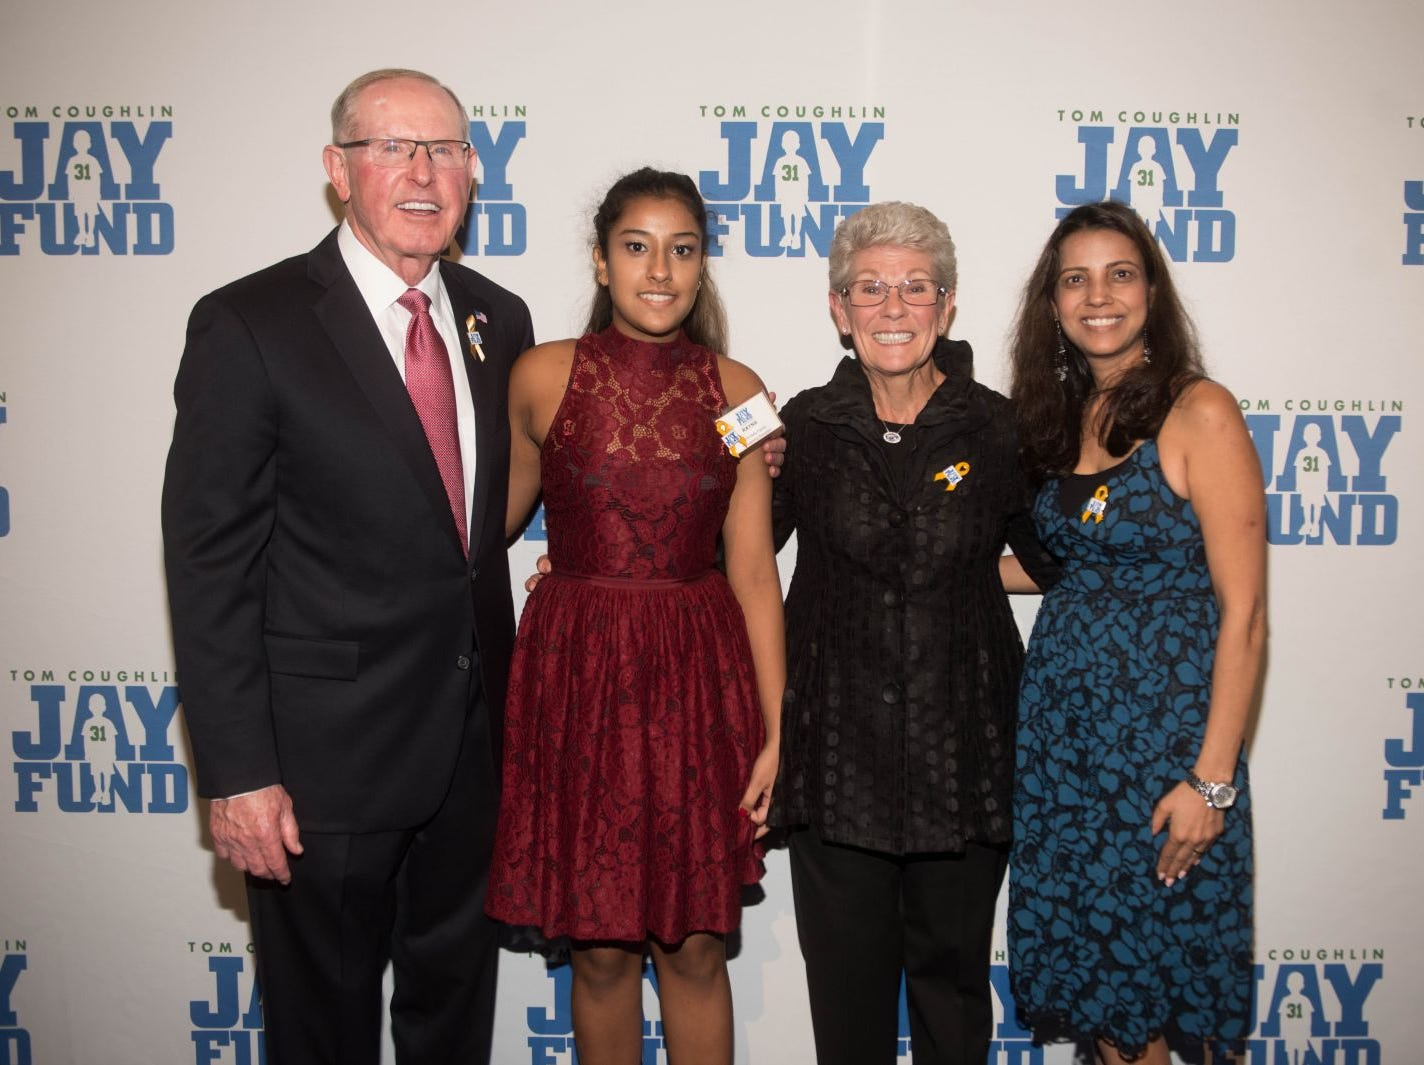 Tom Coughlin, Rayna Mehta, Judy Coughlin and Parul Mehta. The 14th annual Jay Fund Champions for Children Gala was held at Cipriani 42nd Street. 09/21/2018